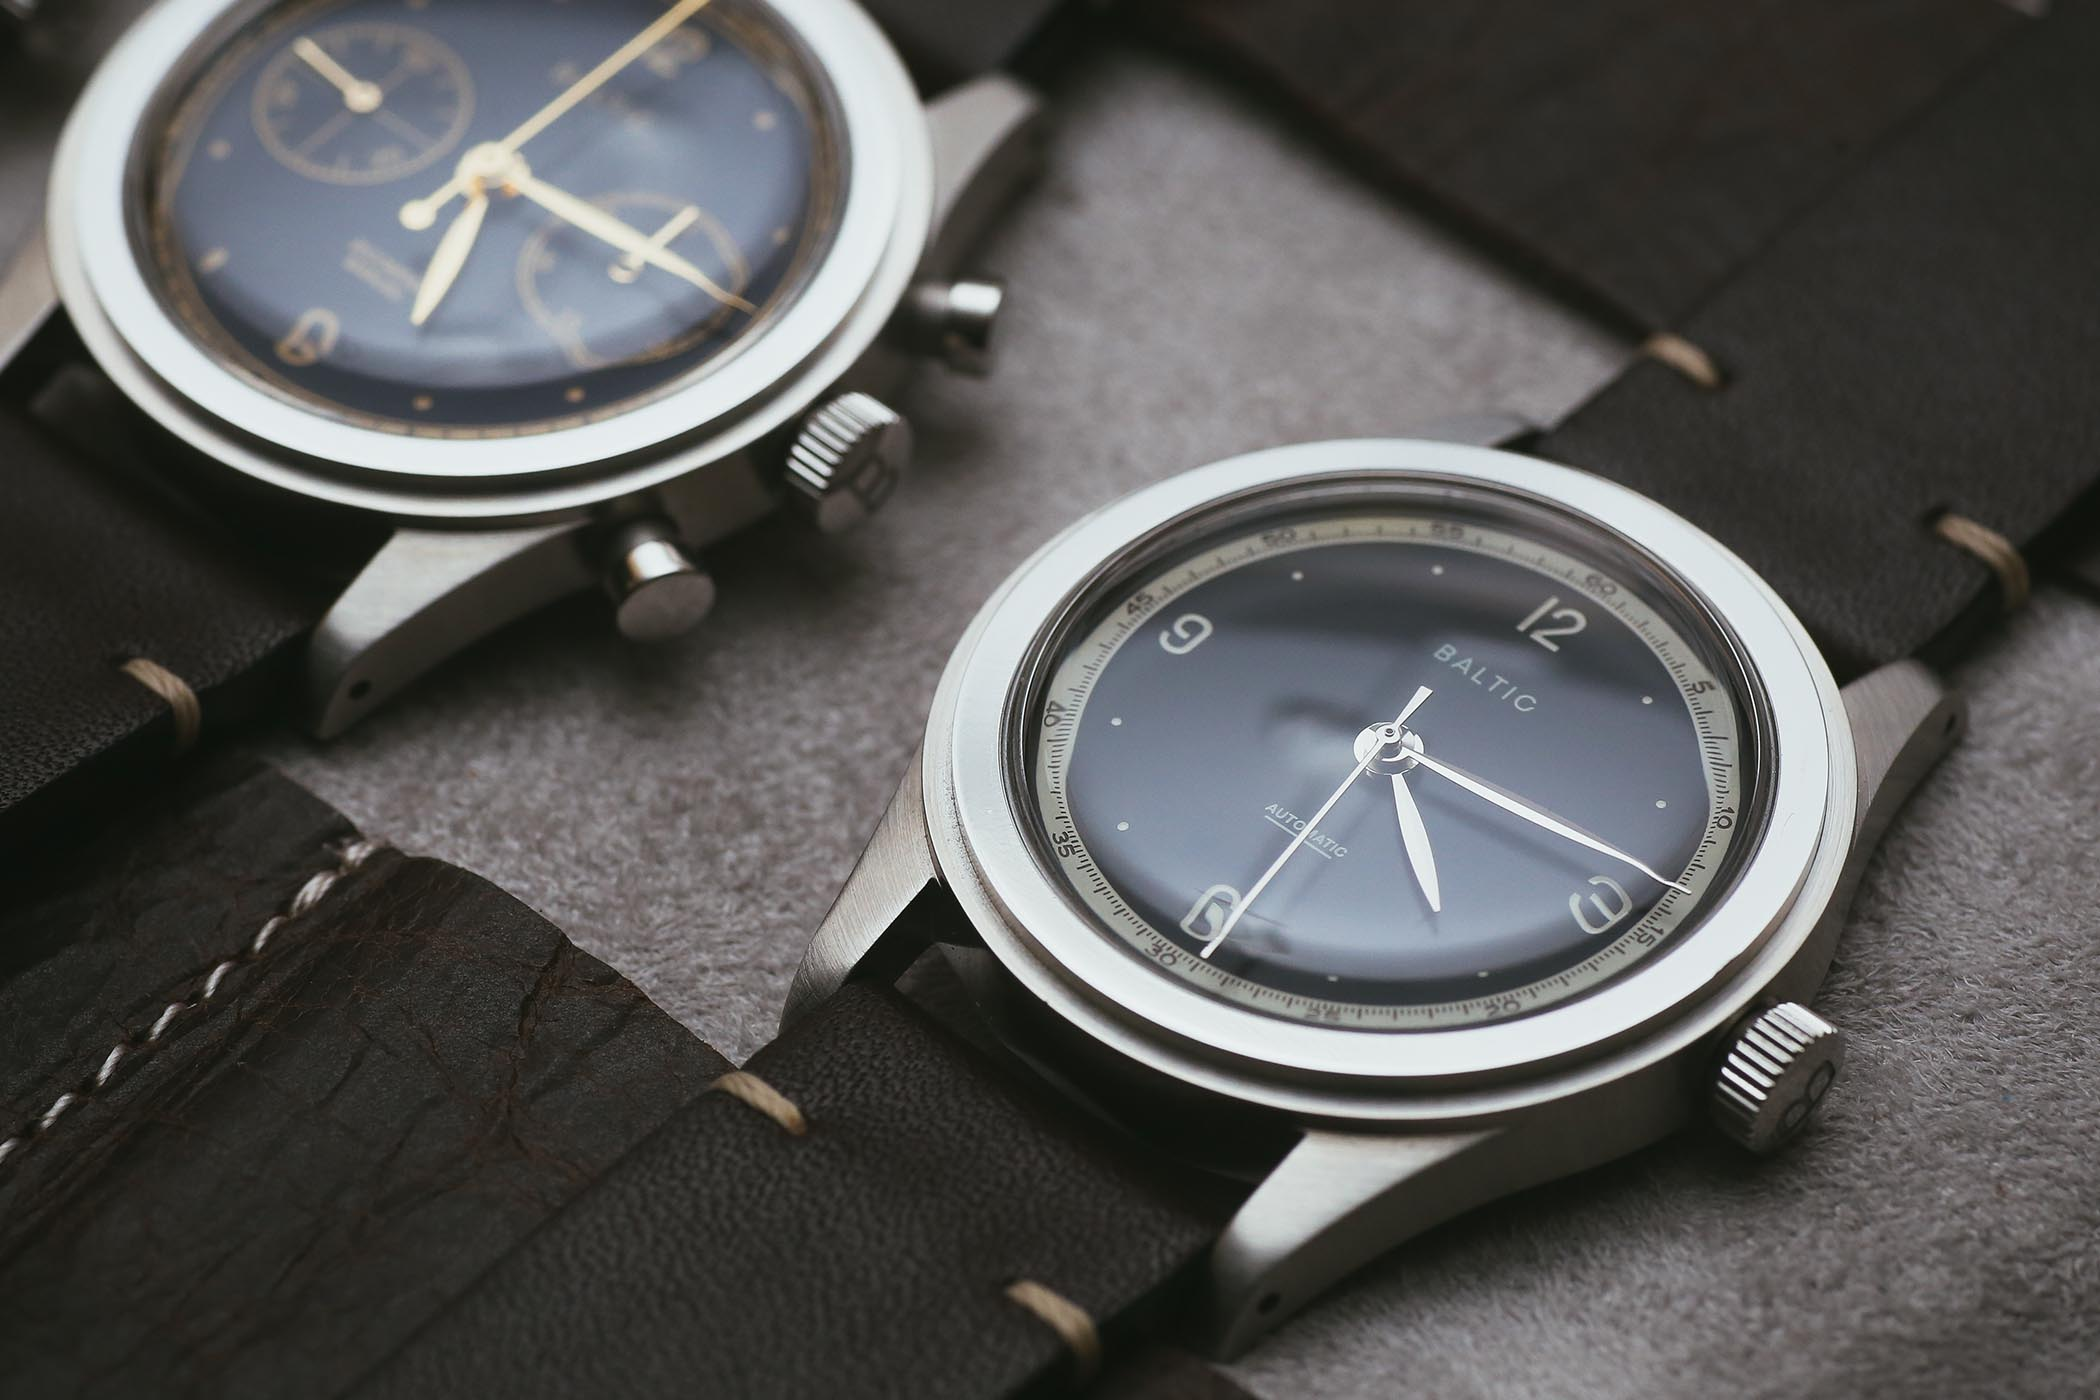 Baltic Watches HMS 001 Bicompax 001